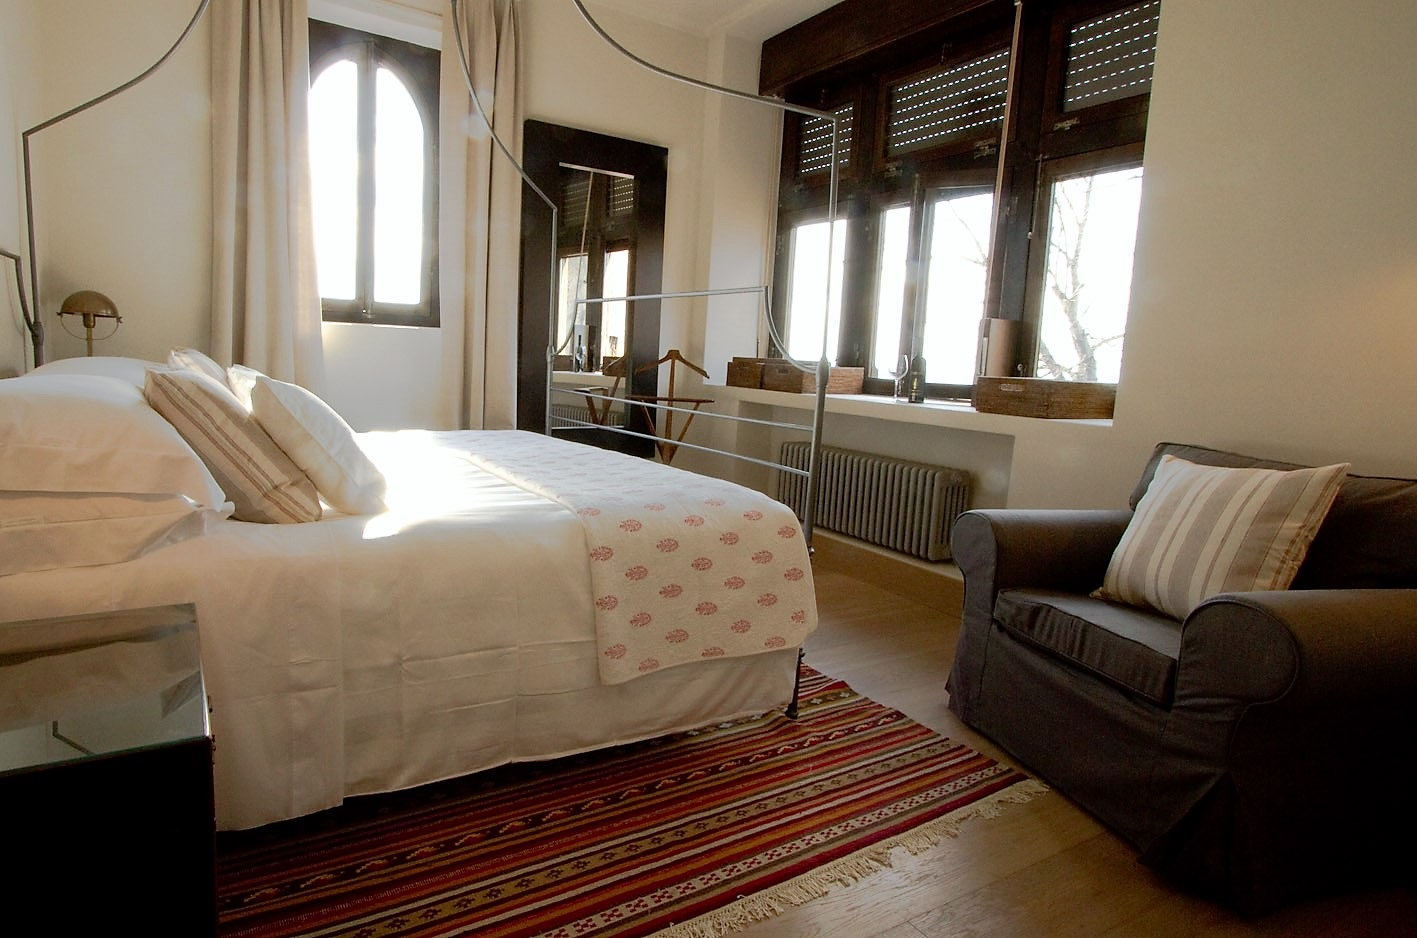 Bedroom in countryhouse apartment.jpg